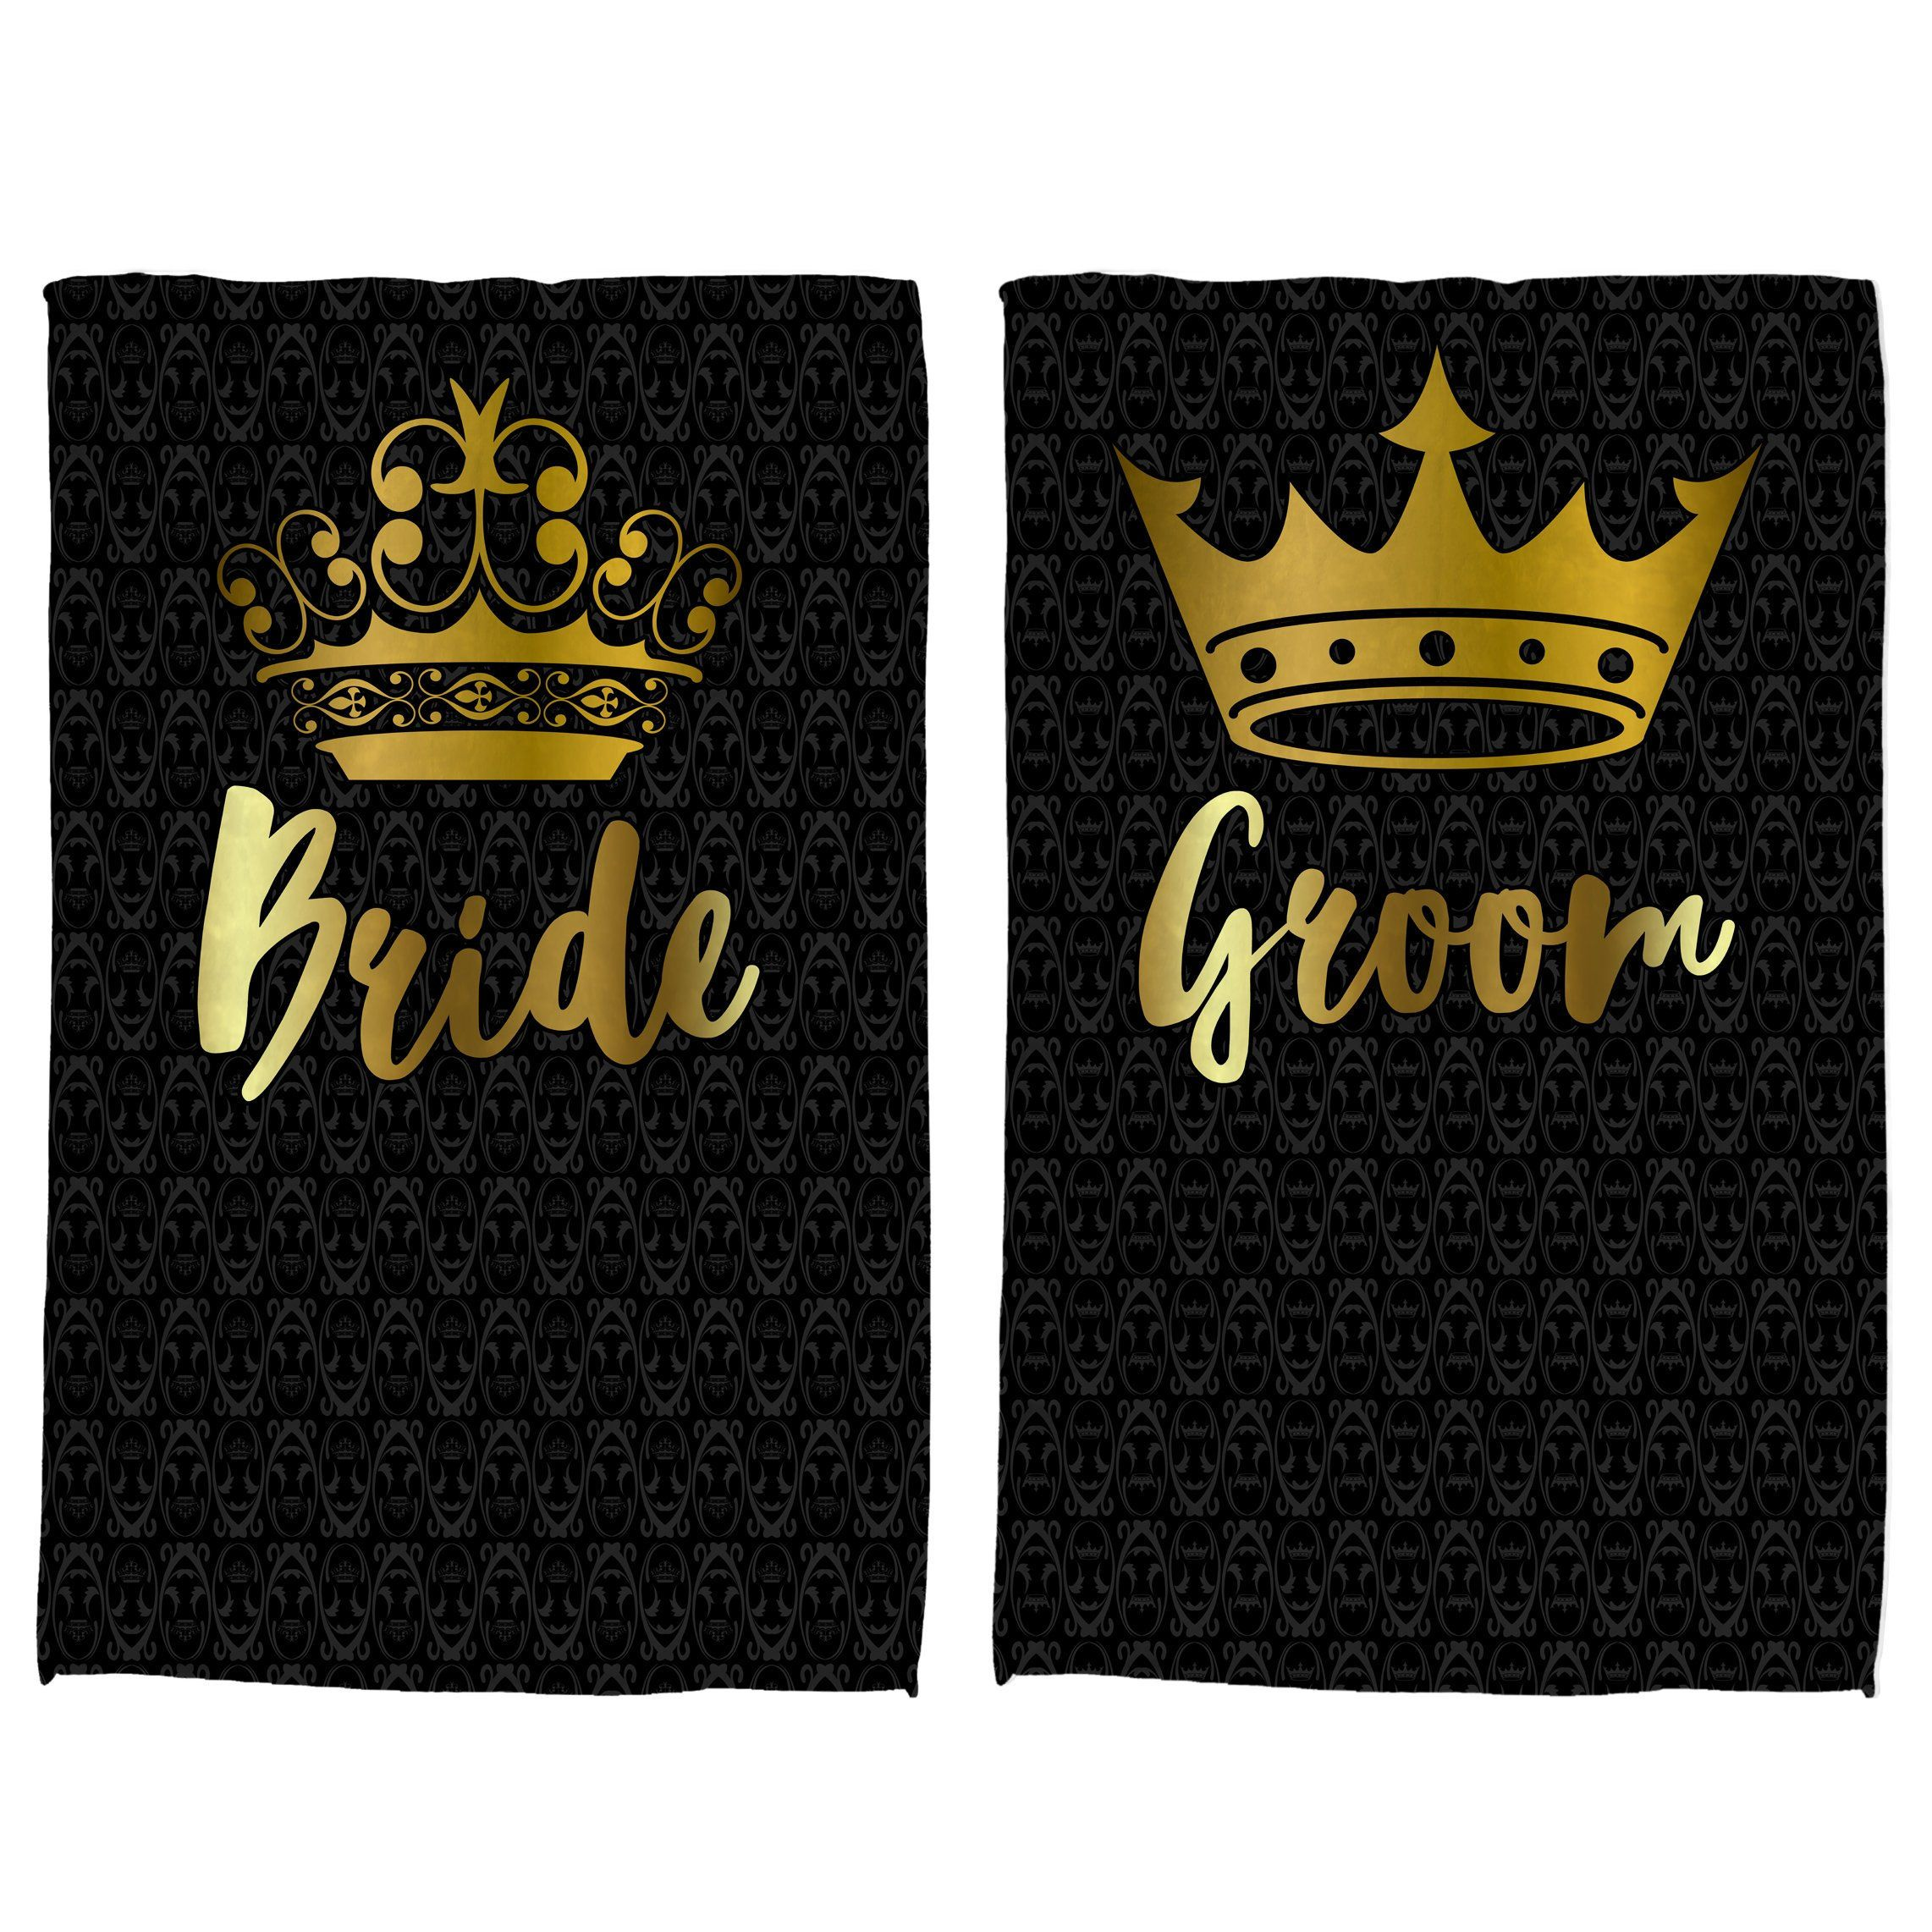 Bride And Groom Honeymoon Gifts Wedding Towel For Him Her